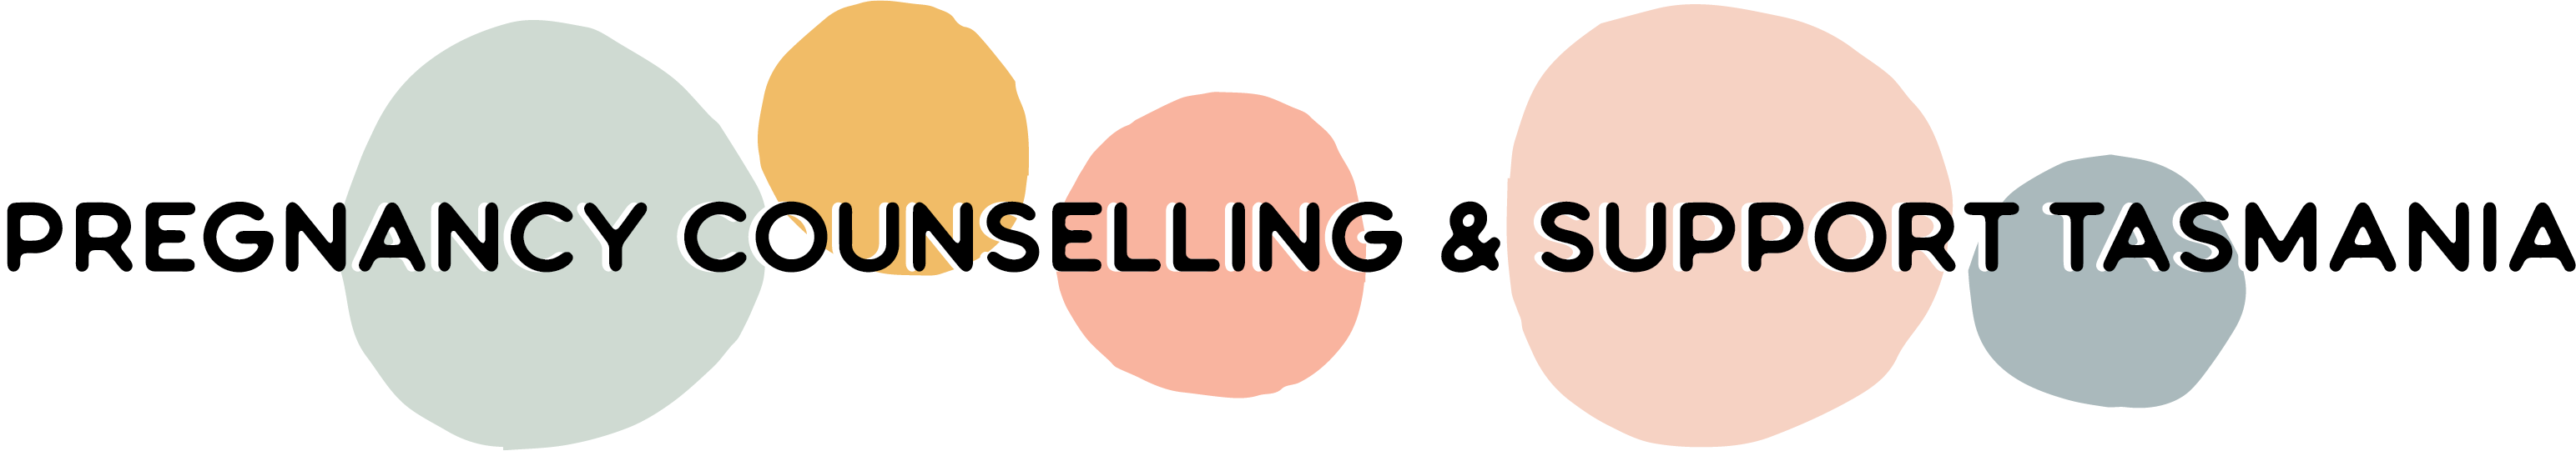 Pregnancy Counselling and Support Tasmania Logo